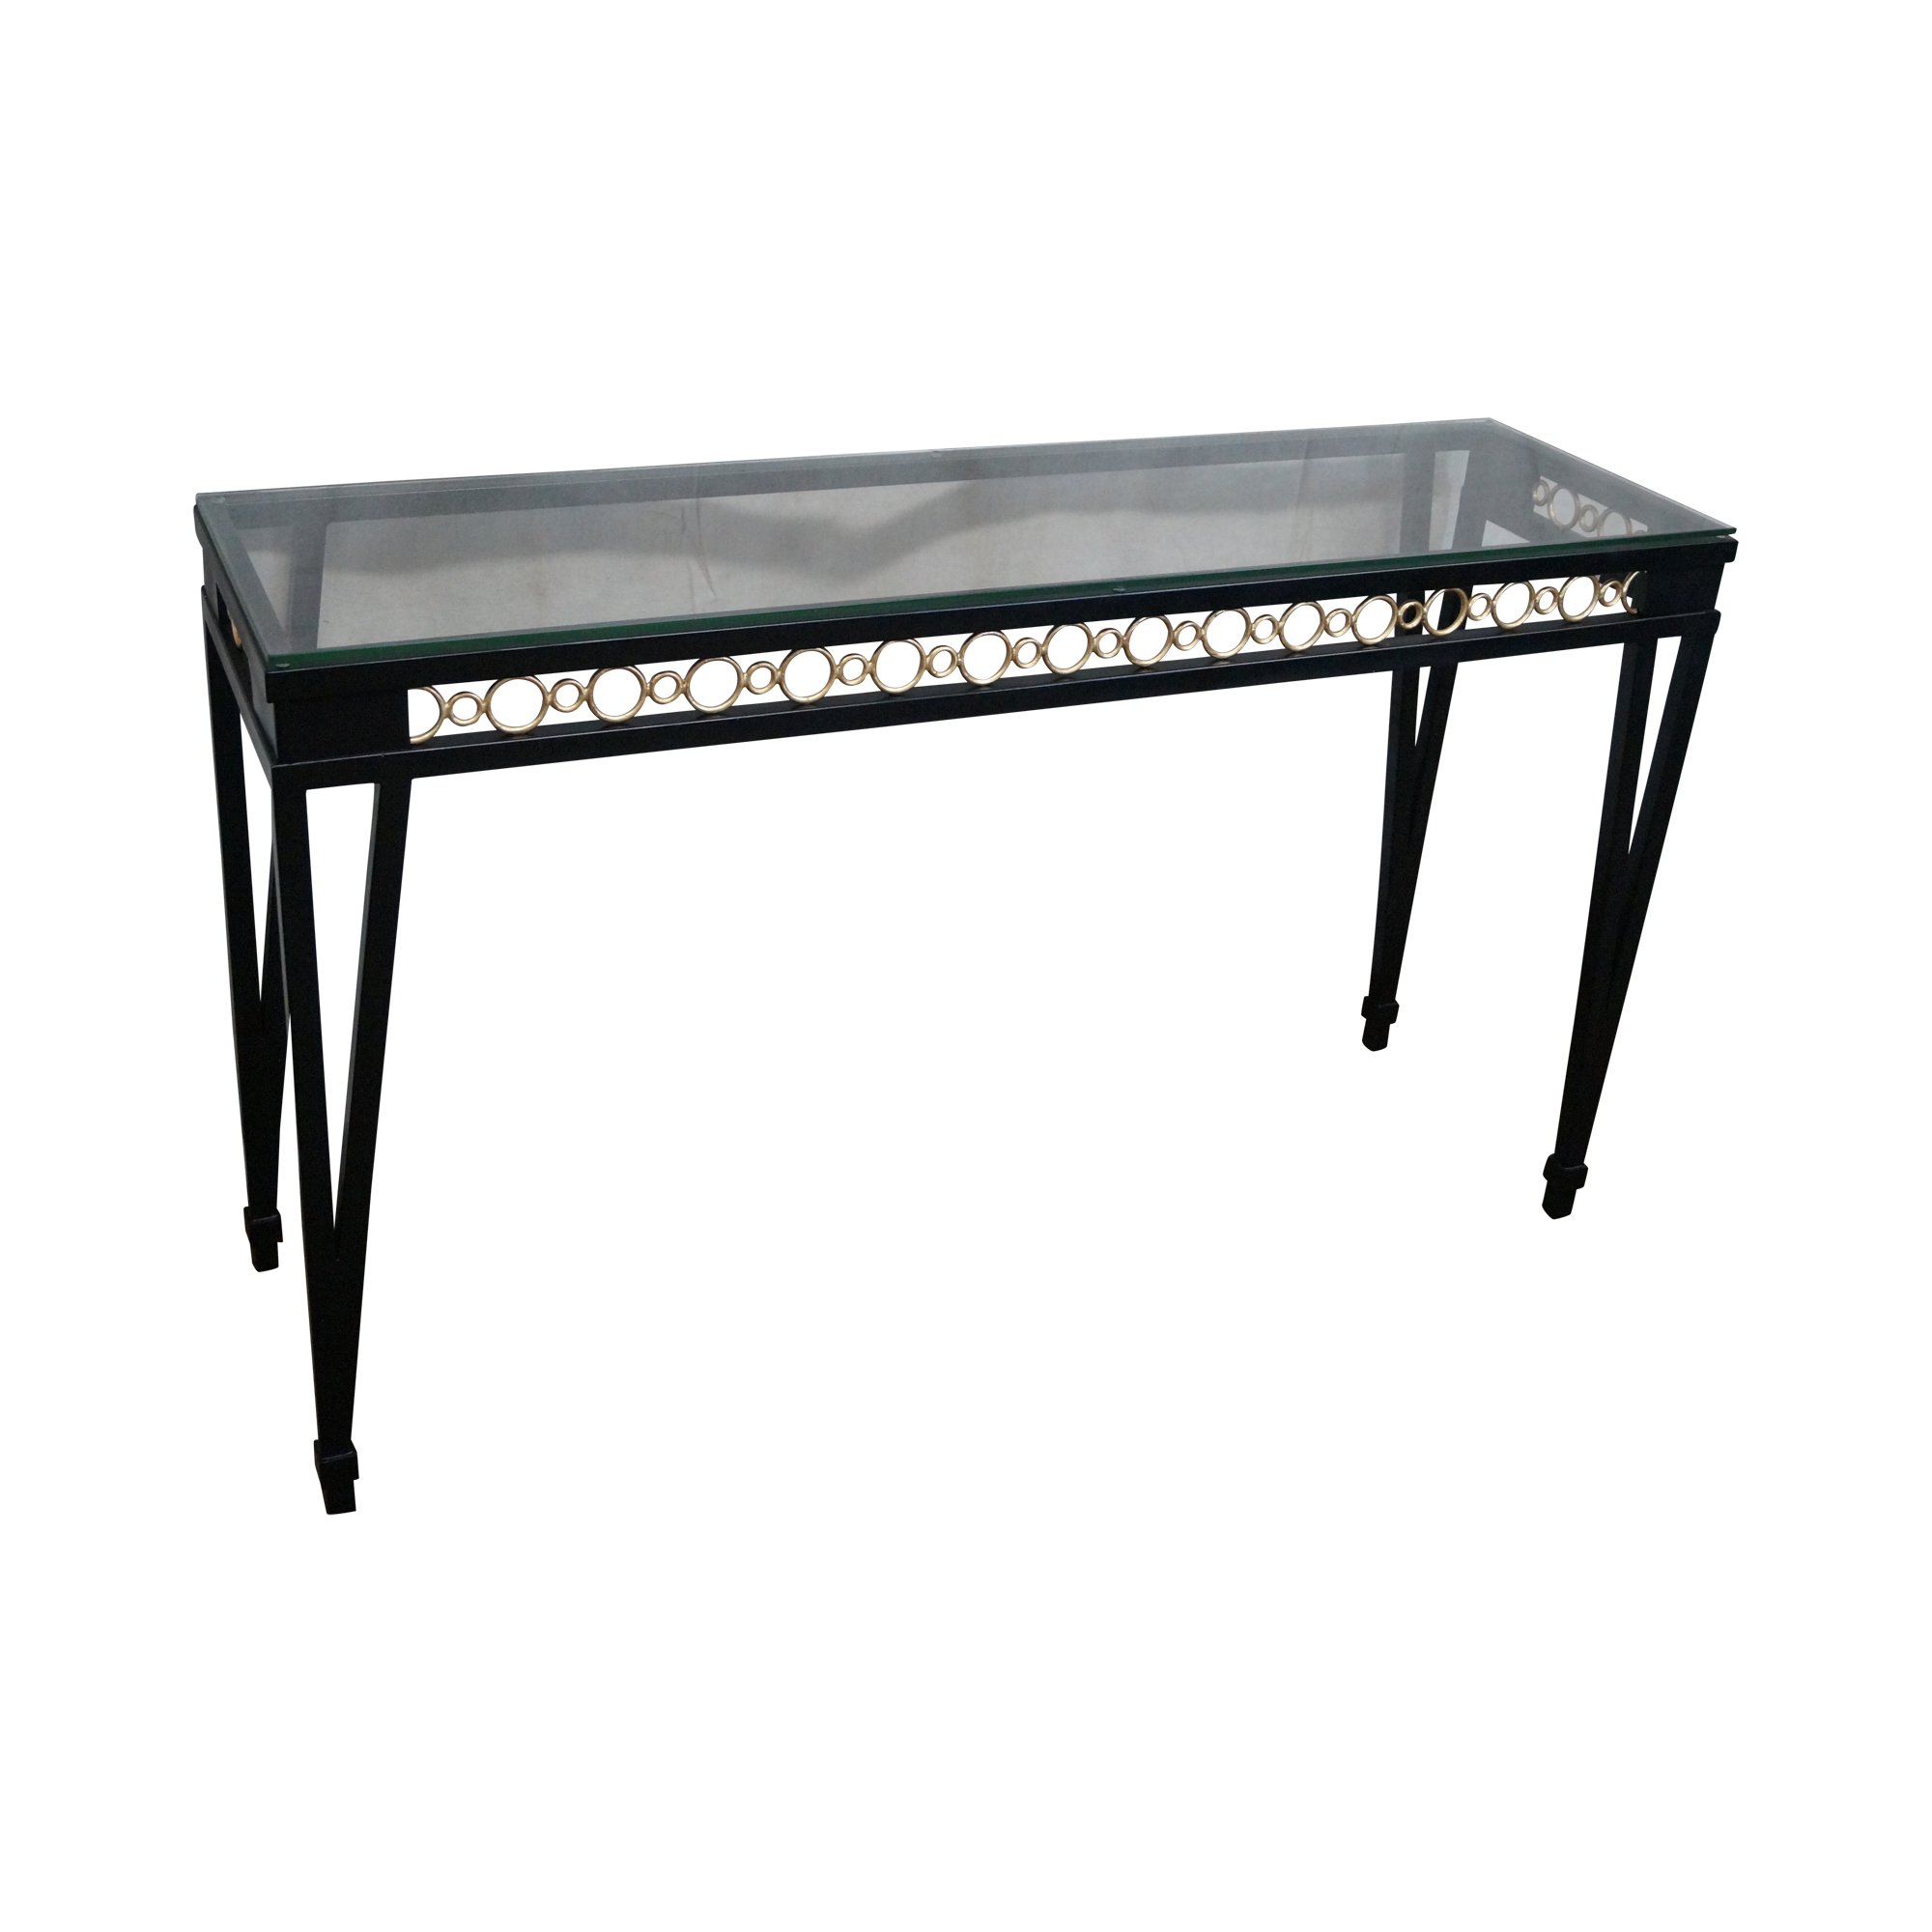 Wildwood accents regency style iron console table chairish for Table 6 wildwood mo